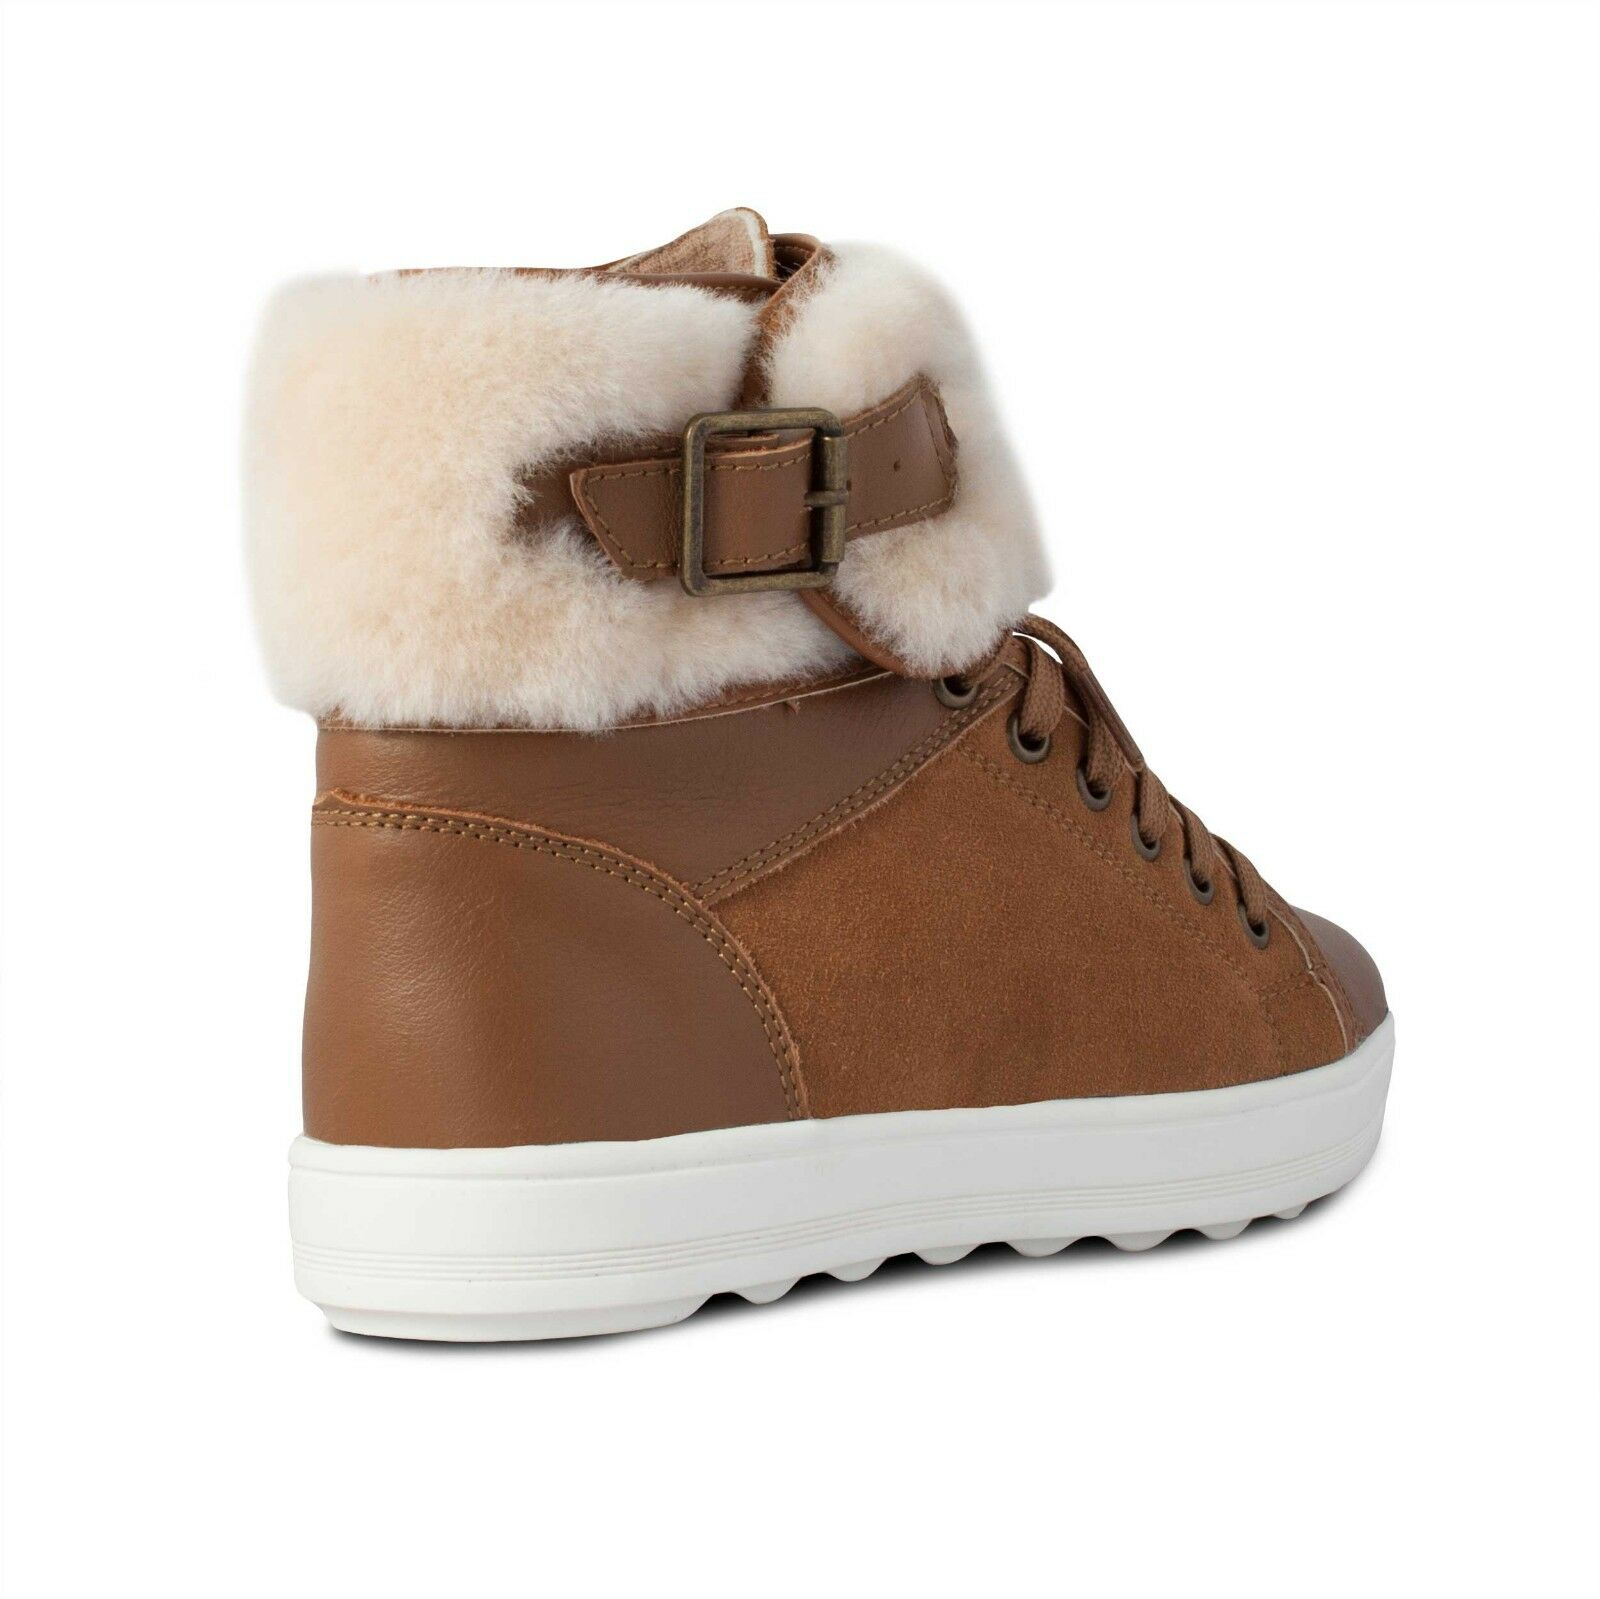 Cloud Nine RJ's Champ Damenschuhe Hi-Top Ankle Sheepskin Trimmed Braun Boot Schuhes UK8